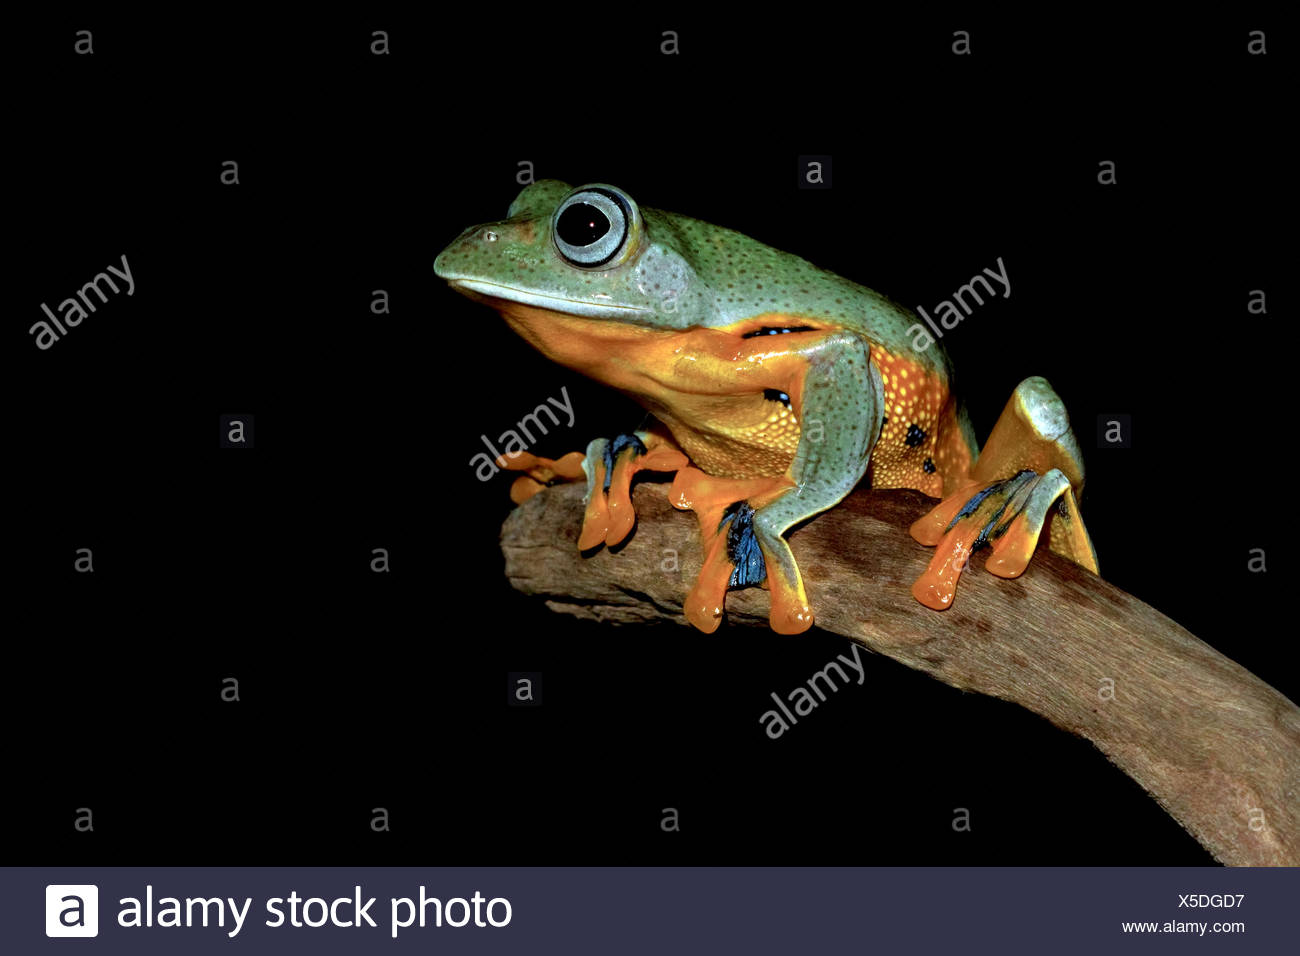 Portrait of a frog sitting on a branch - Stock Image